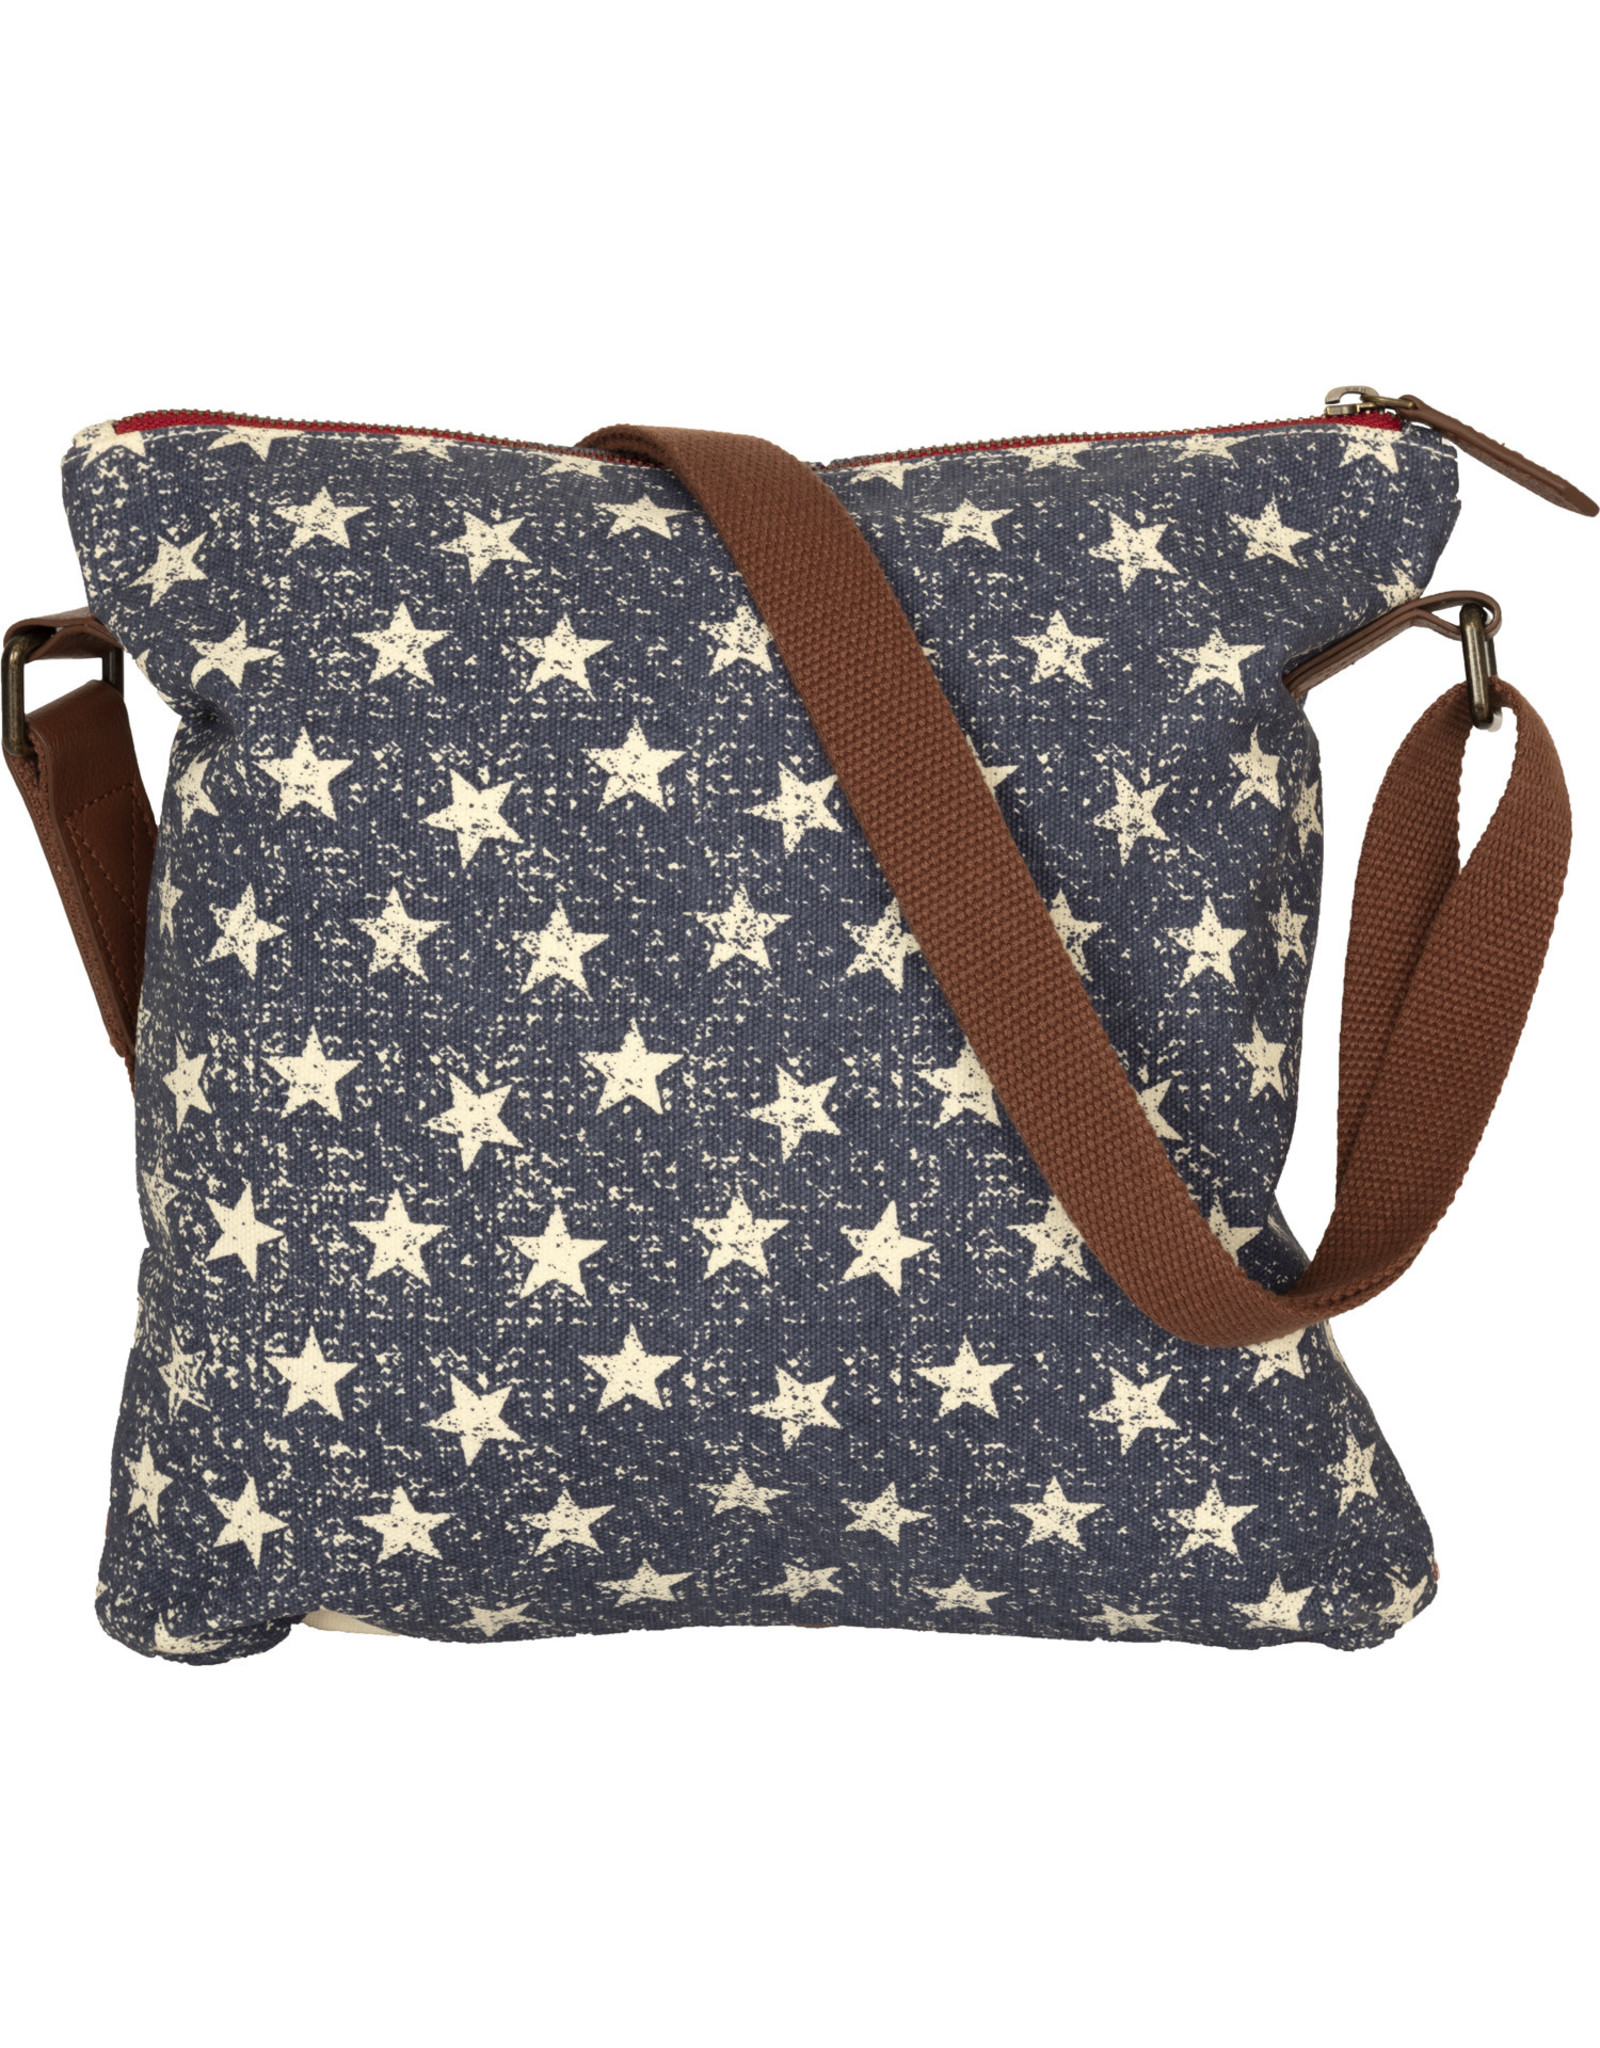 Bella Taylor Antebellum - Canvas Explorer Crossbody